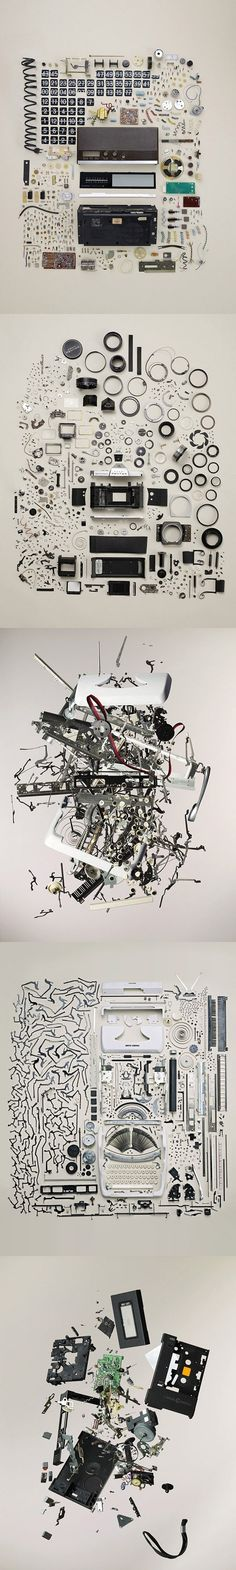 Photographer Todd McLellan deconstructs objects into their smallest components and shoots artful arrangements of the pieces.